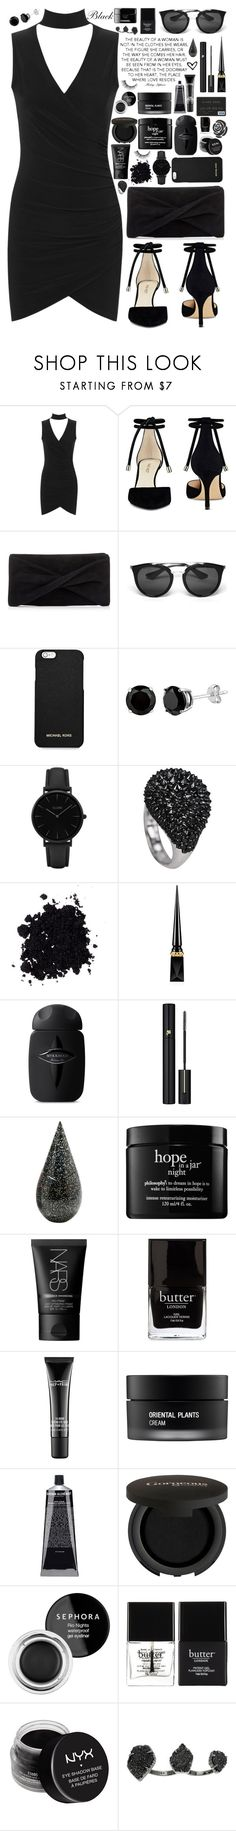 """""""Untitled #346"""" by anna-nedelcheva ❤ liked on Polyvore featuring WearAll, Nine West, Reiss, Prada, MICHAEL Michael Kors, CLUSE, Christian Louboutin, Lancôme, La Prairie and philosophy"""